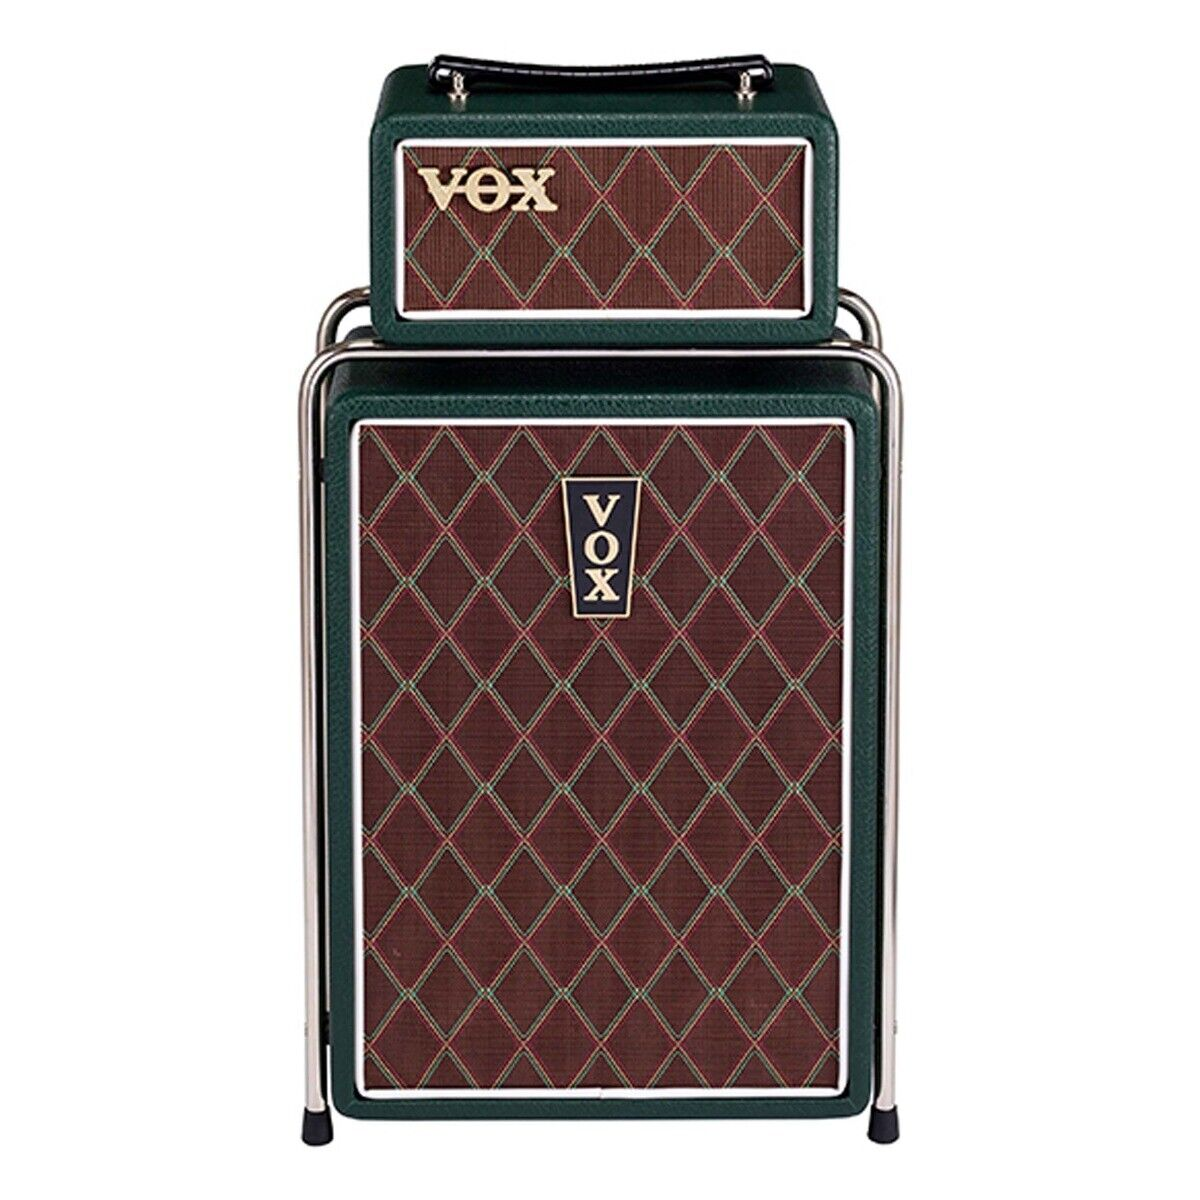 Vox MSB25BRG Mini Superbeetle 25-watt 1x10